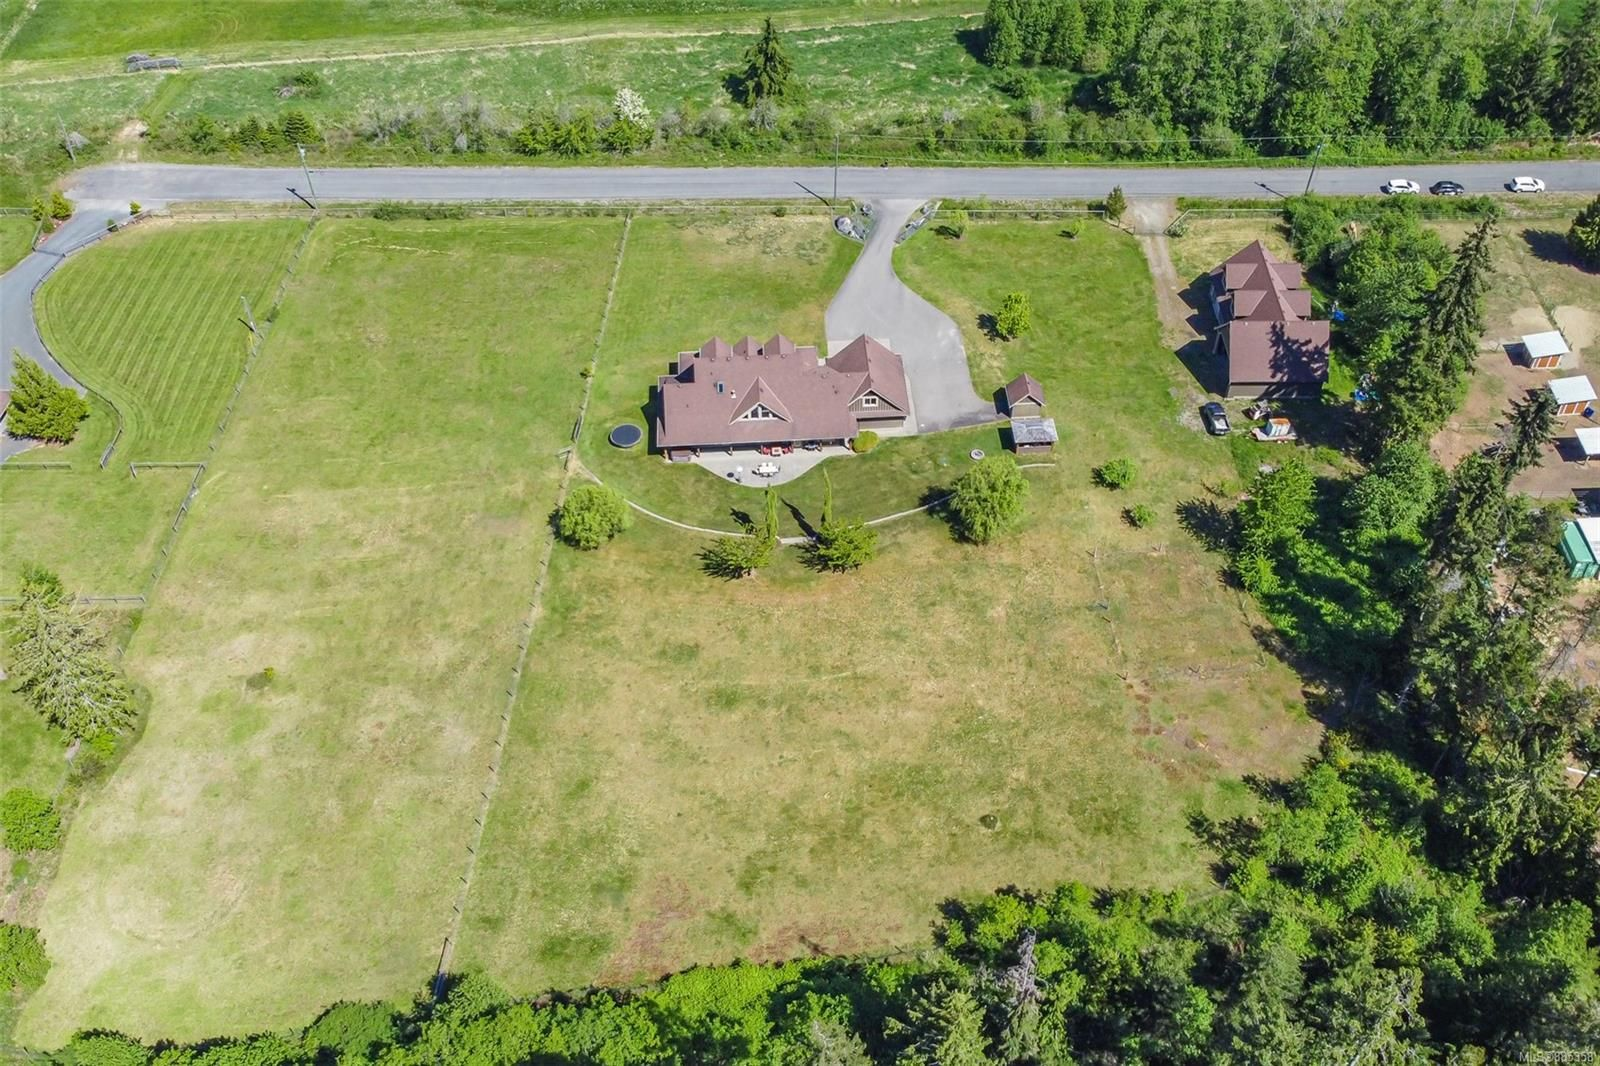 Photo 73: Photos: 2850 Peters Rd in : PQ Qualicum Beach House for sale (Parksville/Qualicum)  : MLS®# 885358